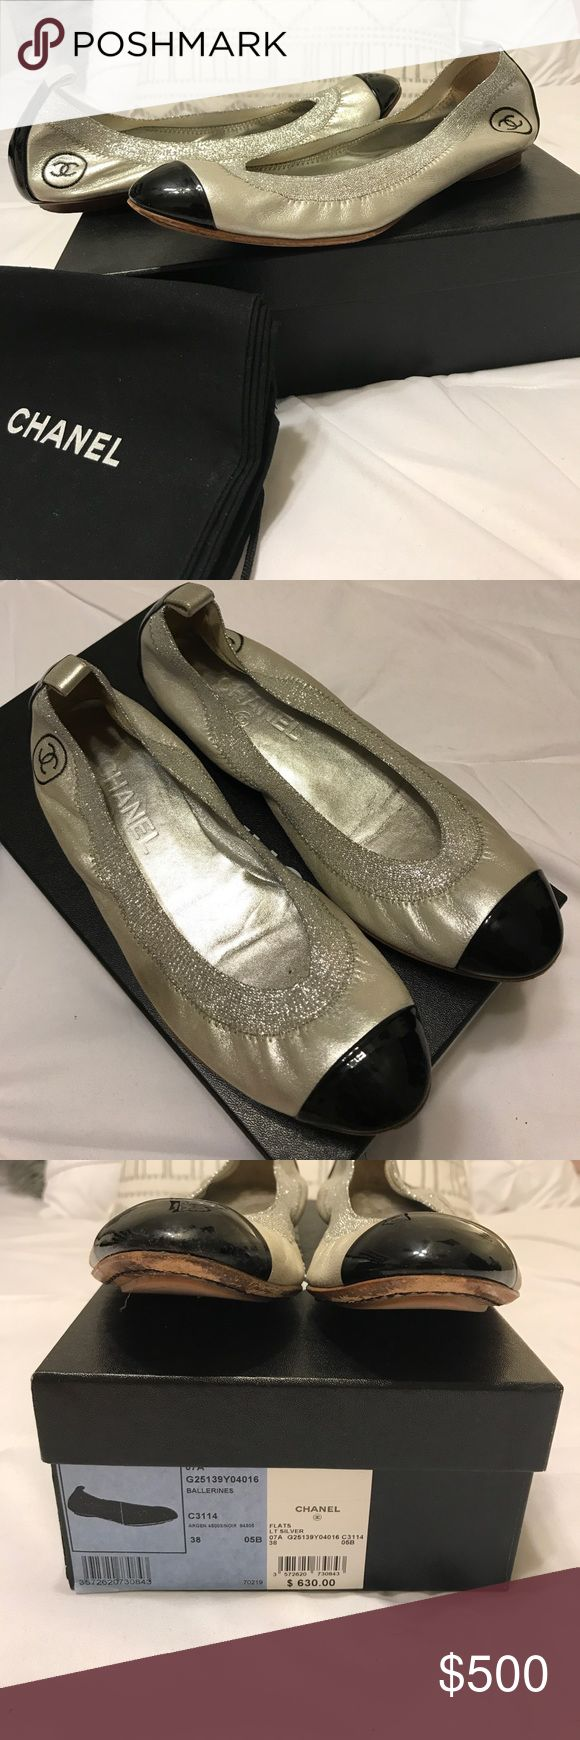 Chanel Iconic Ballerines Flats (Size 38) Gently worn / Paid $630 plus tax / Silver w. black cap toe and stretch detailing / See pictures for wear on bottom and toe - if you need additional pictures, please ask! / Size 38 - fits a 7.5 or 8 / Iconic style / Sold out / Comes with dustbags & box / Authentic / Comes from a smoke & pet free environment / Your purchase helps buy much needed school supplies for my students. / Please ask any questions, I'll get back to you ASAP! CHANEL Shoes Flats…